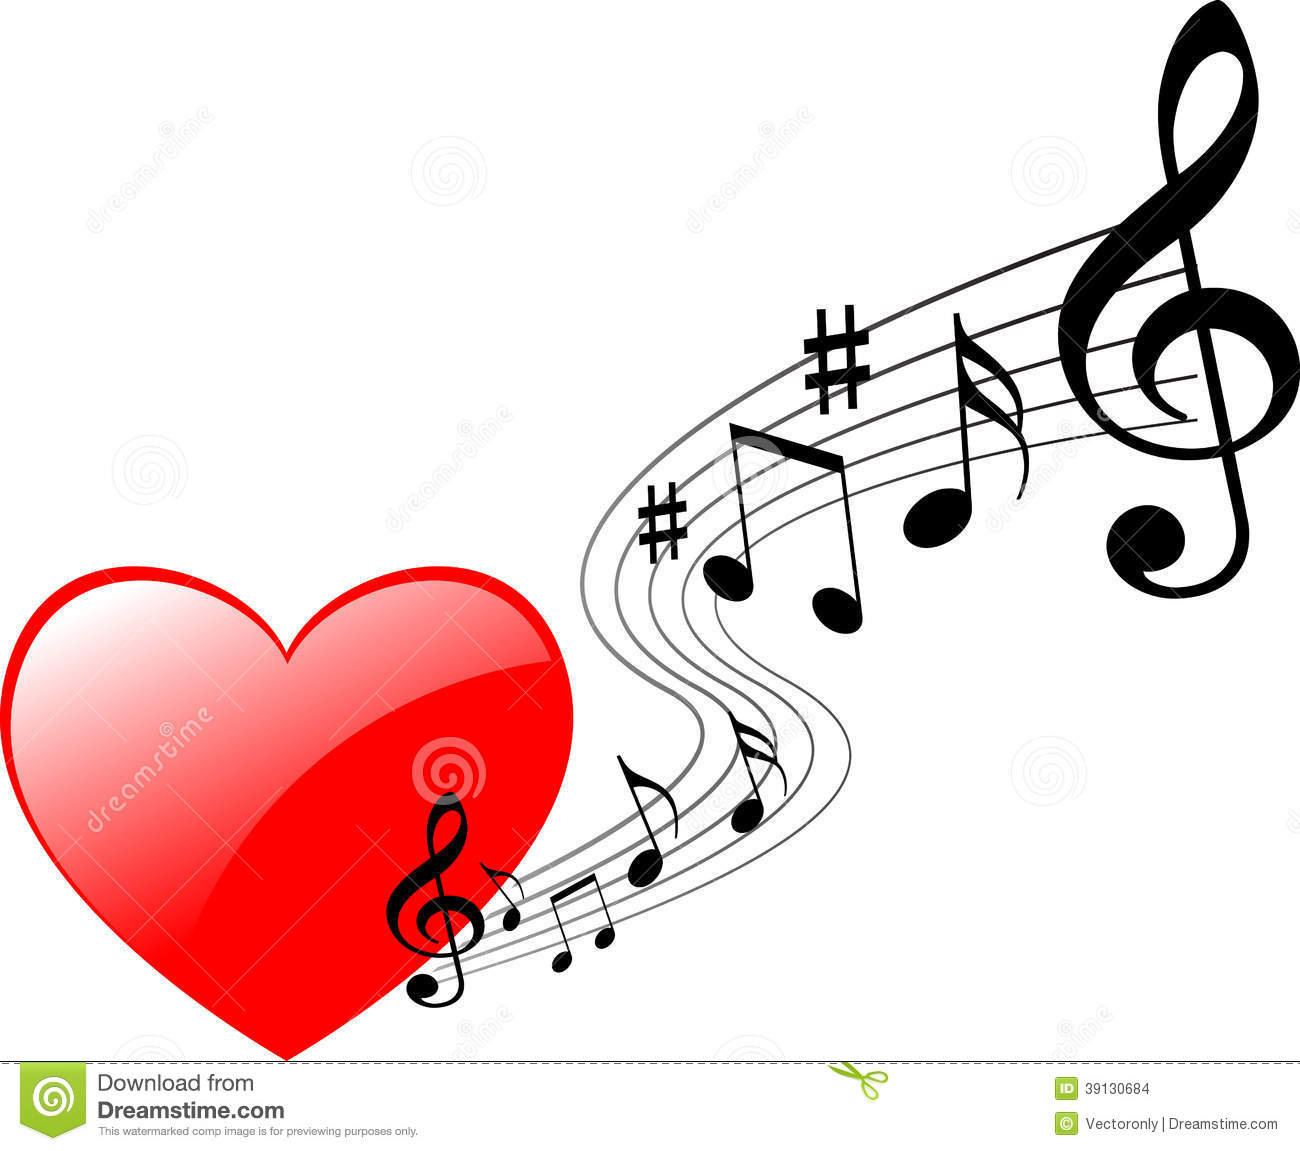 heart music stock vector illustration of banner  chords free clipart music note Colorful Music Notes Clip Art